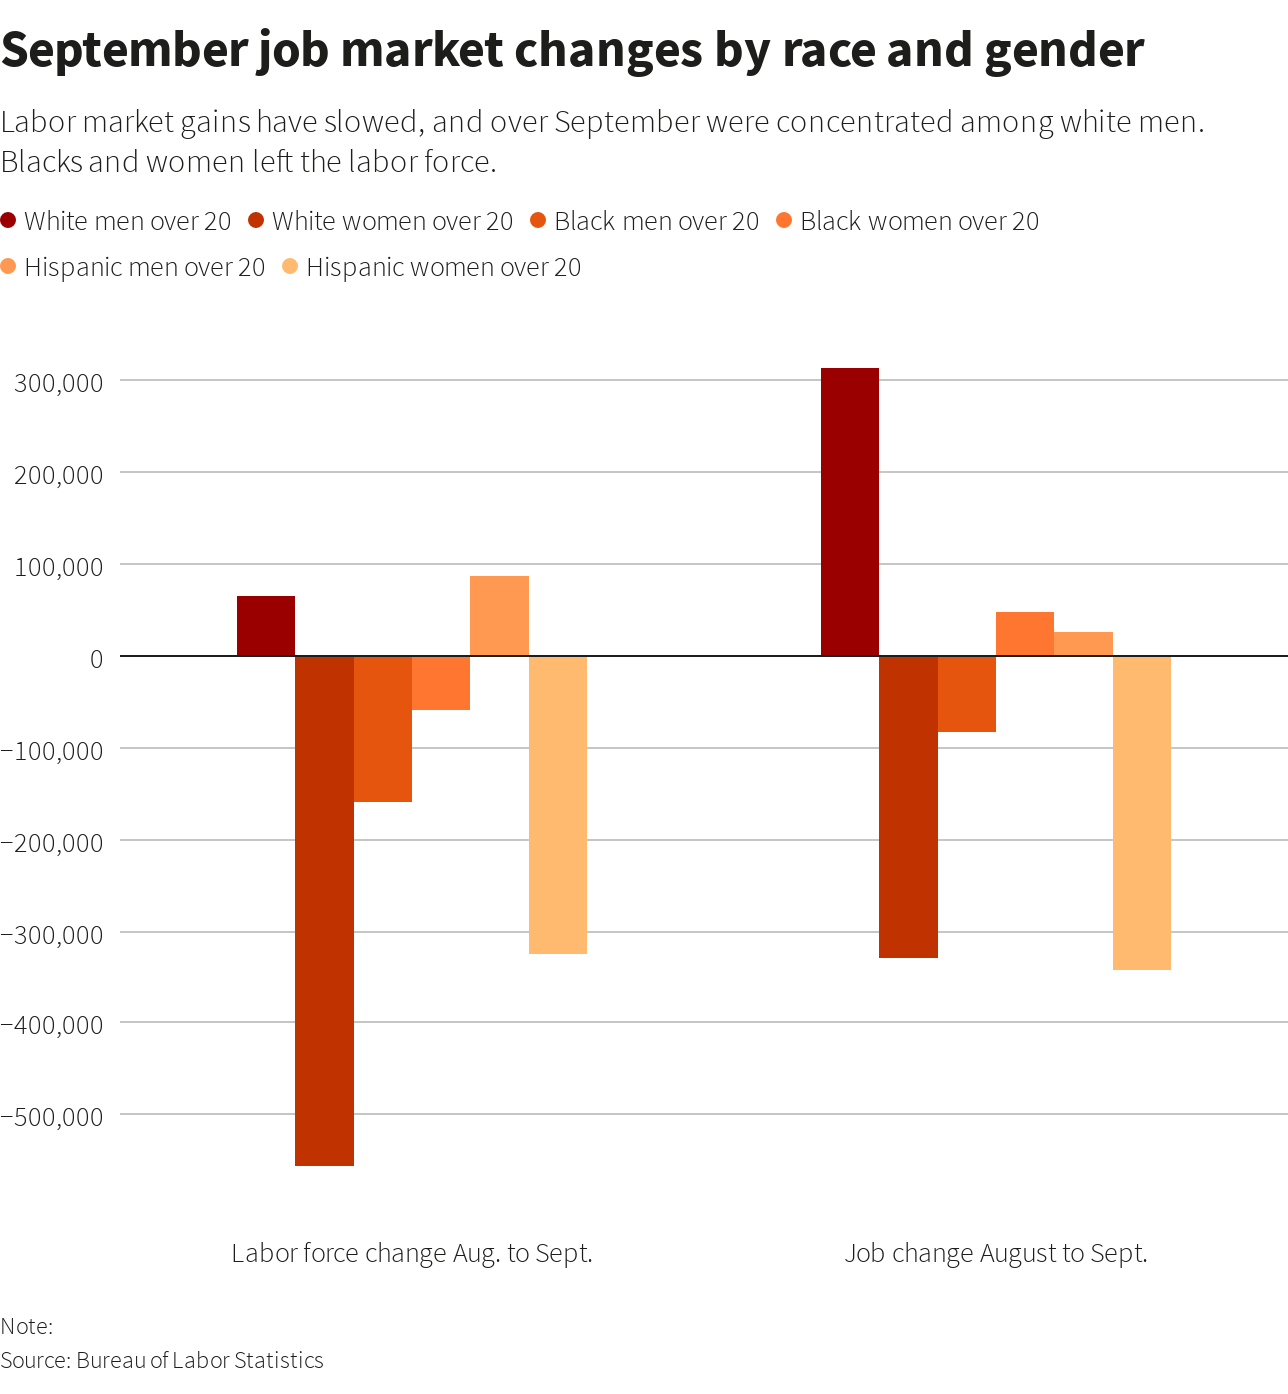 September job market changes by race and gender.